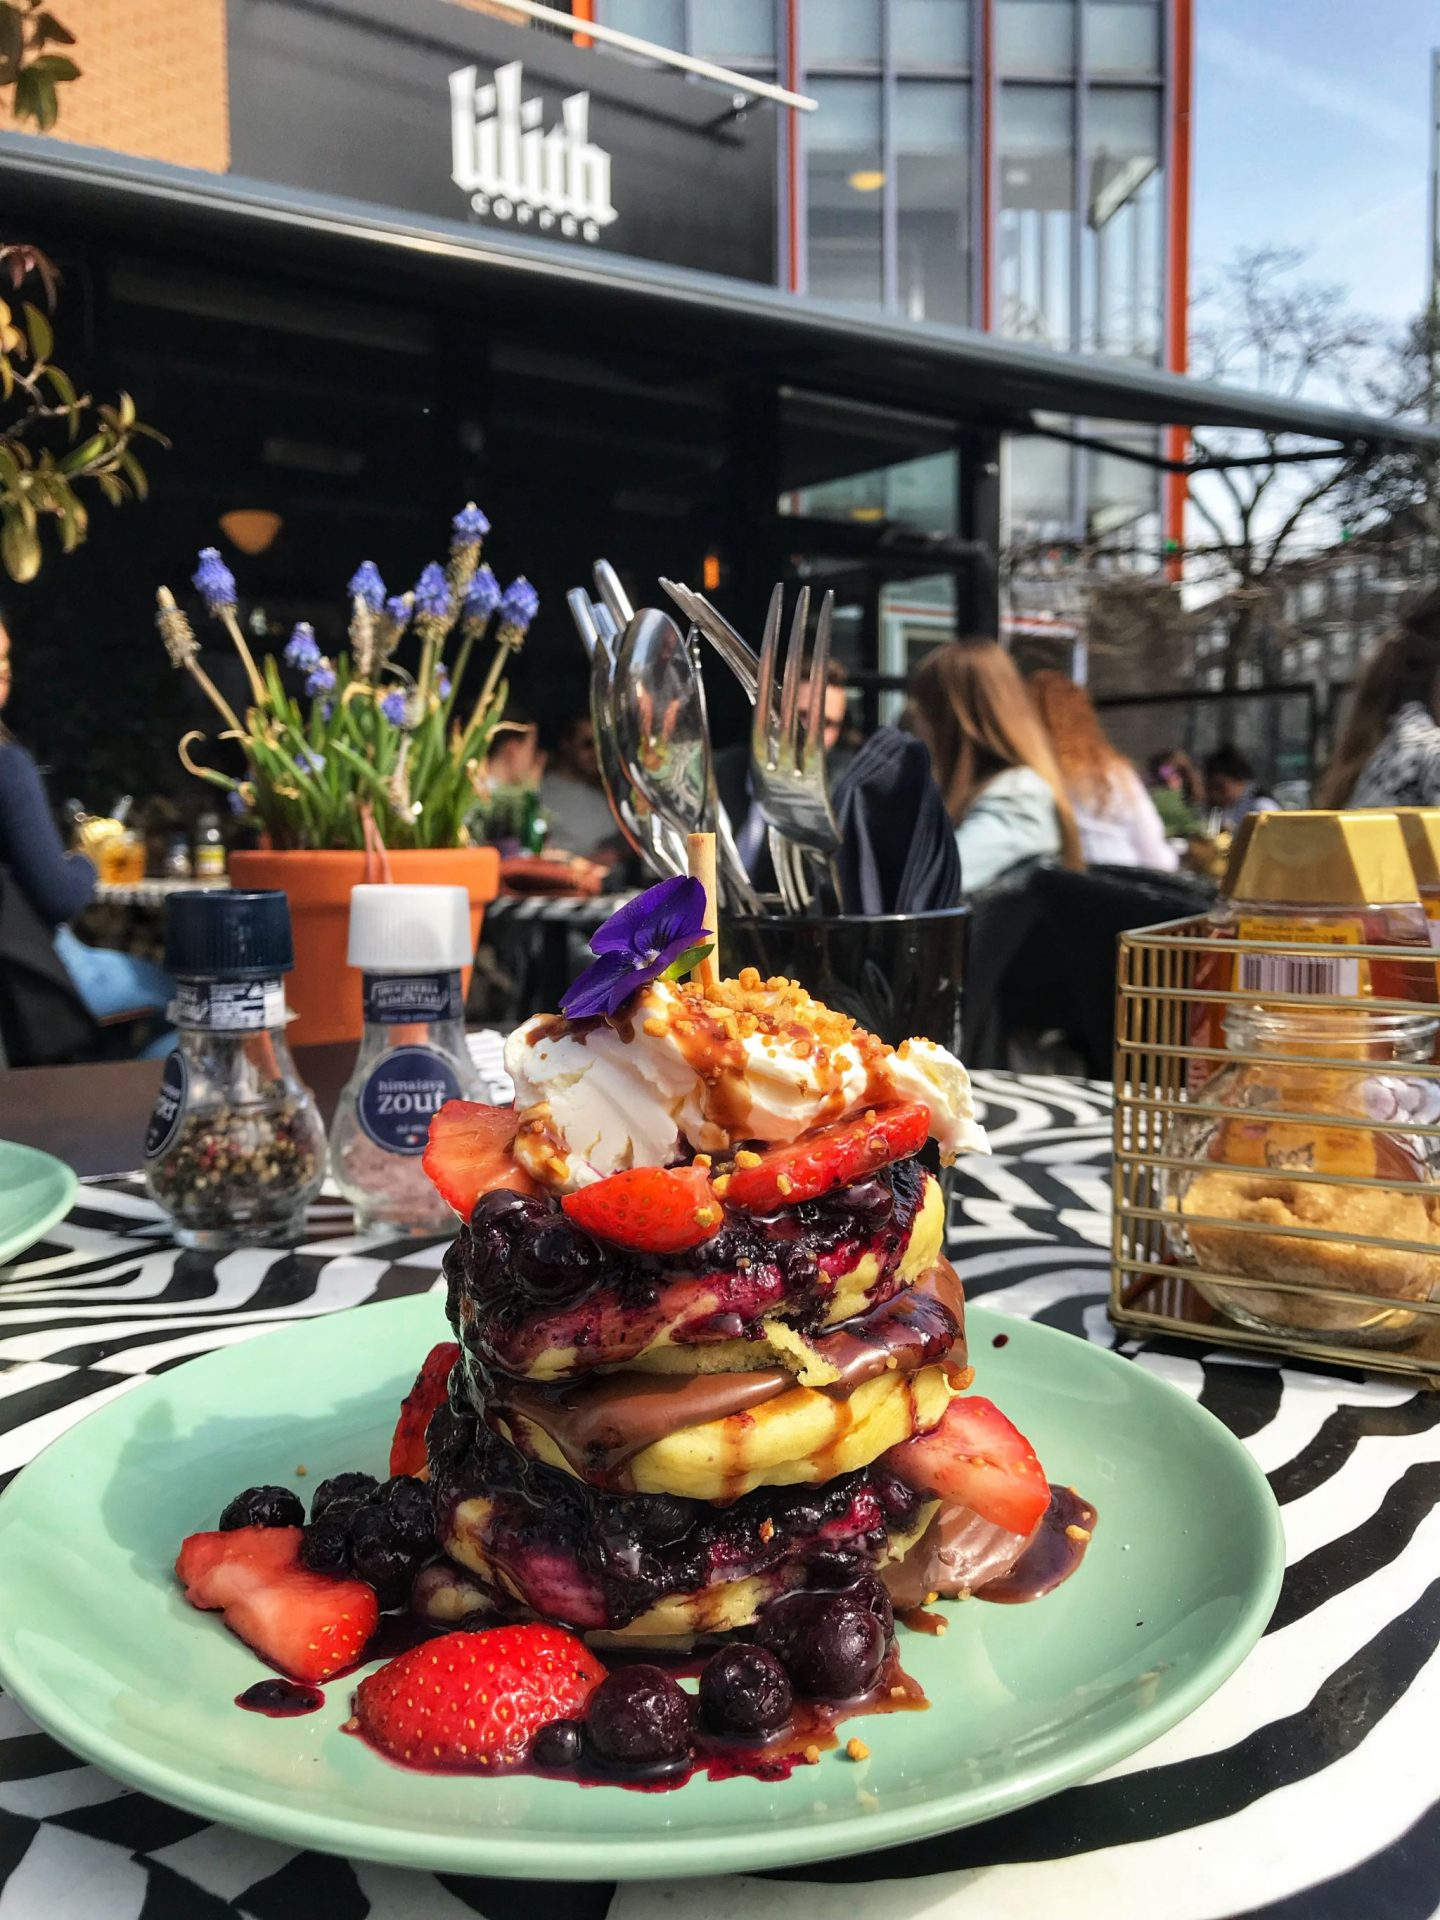 Delicious fruity pancakes at Lilith Coffee Rotterdam